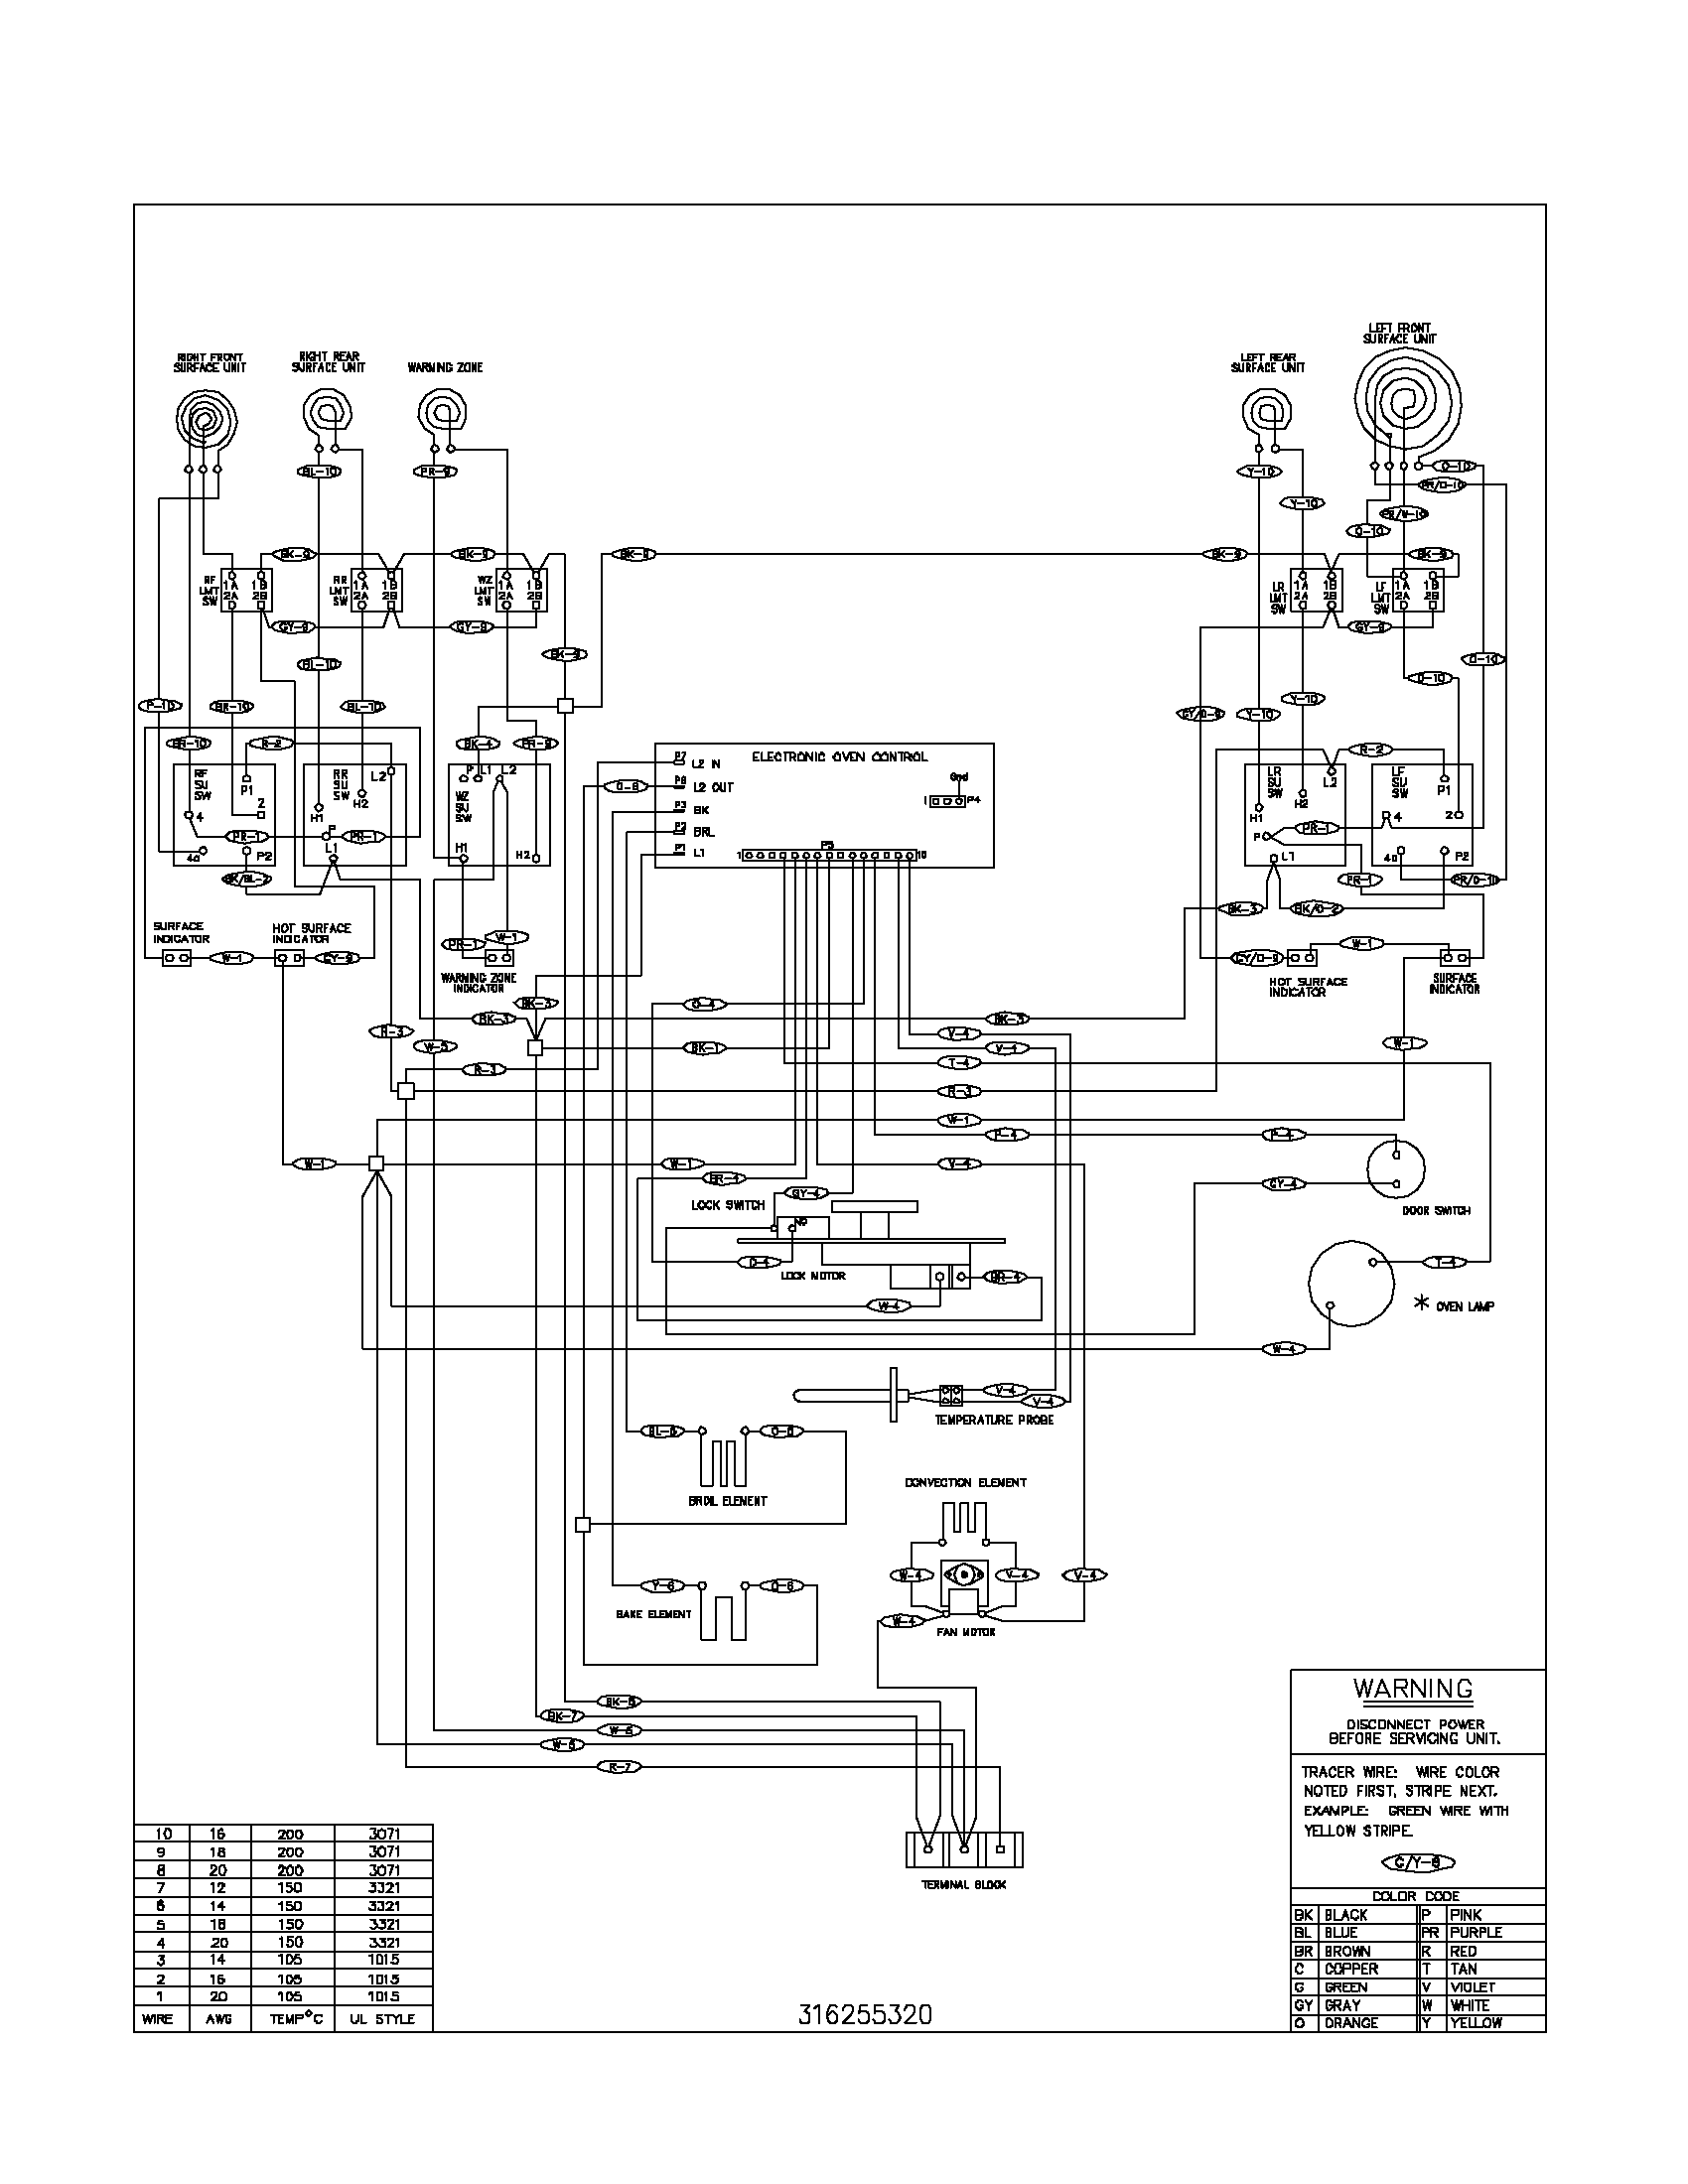 wiring diagram parts whirlpool fefl88acc electric range timer stove clocks and whirlpool dryer wiring schematic at n-0.co